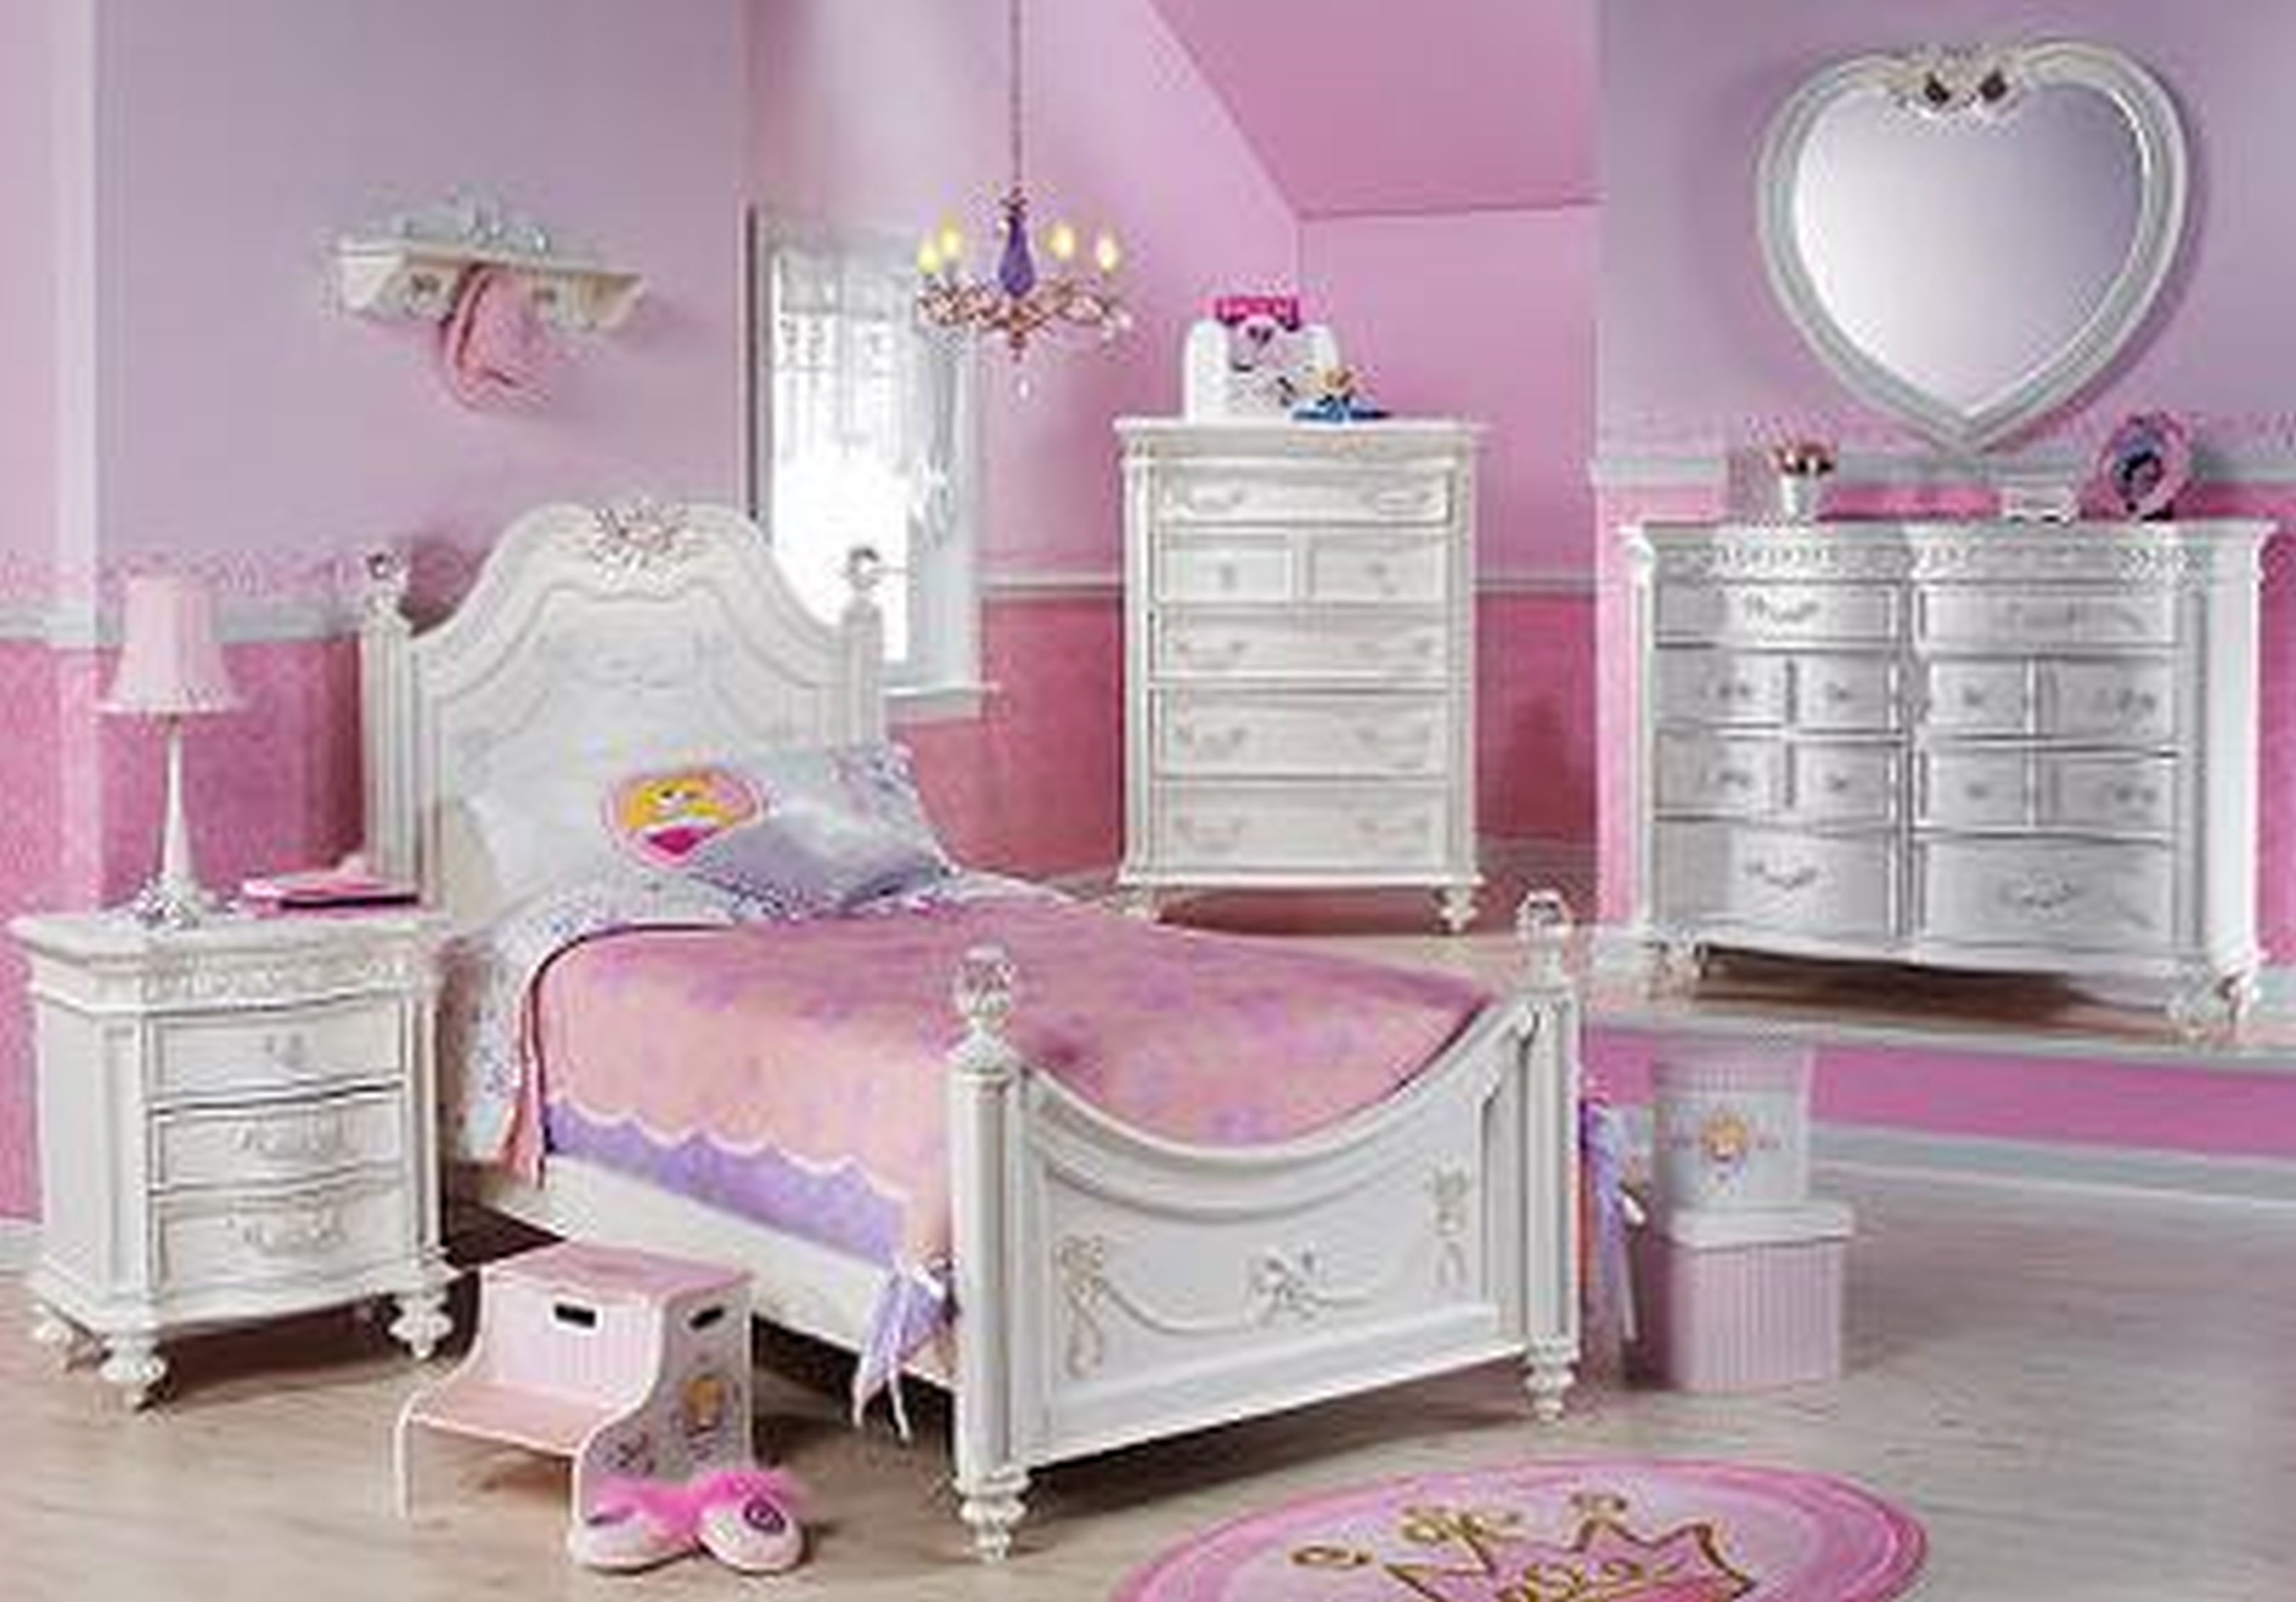 10 Pretty Paint Ideas For Girls Room 2021